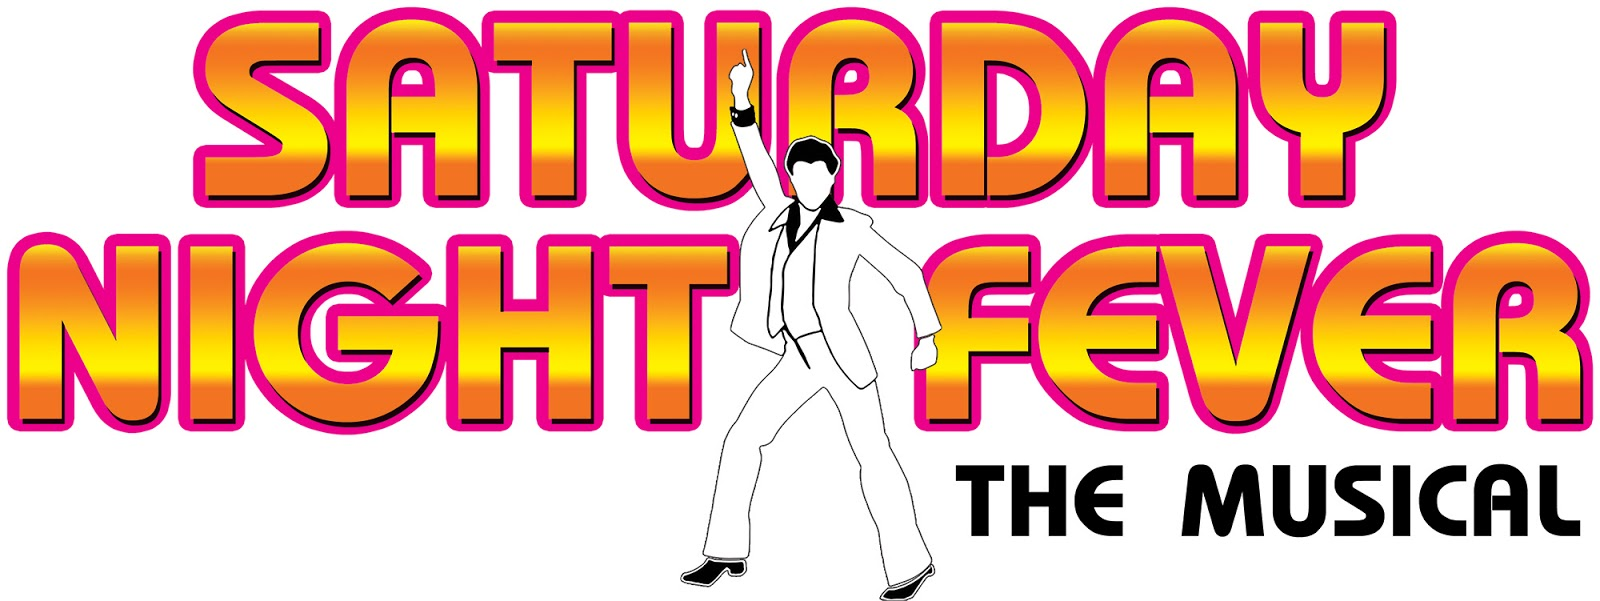 Saturday night fever clip art